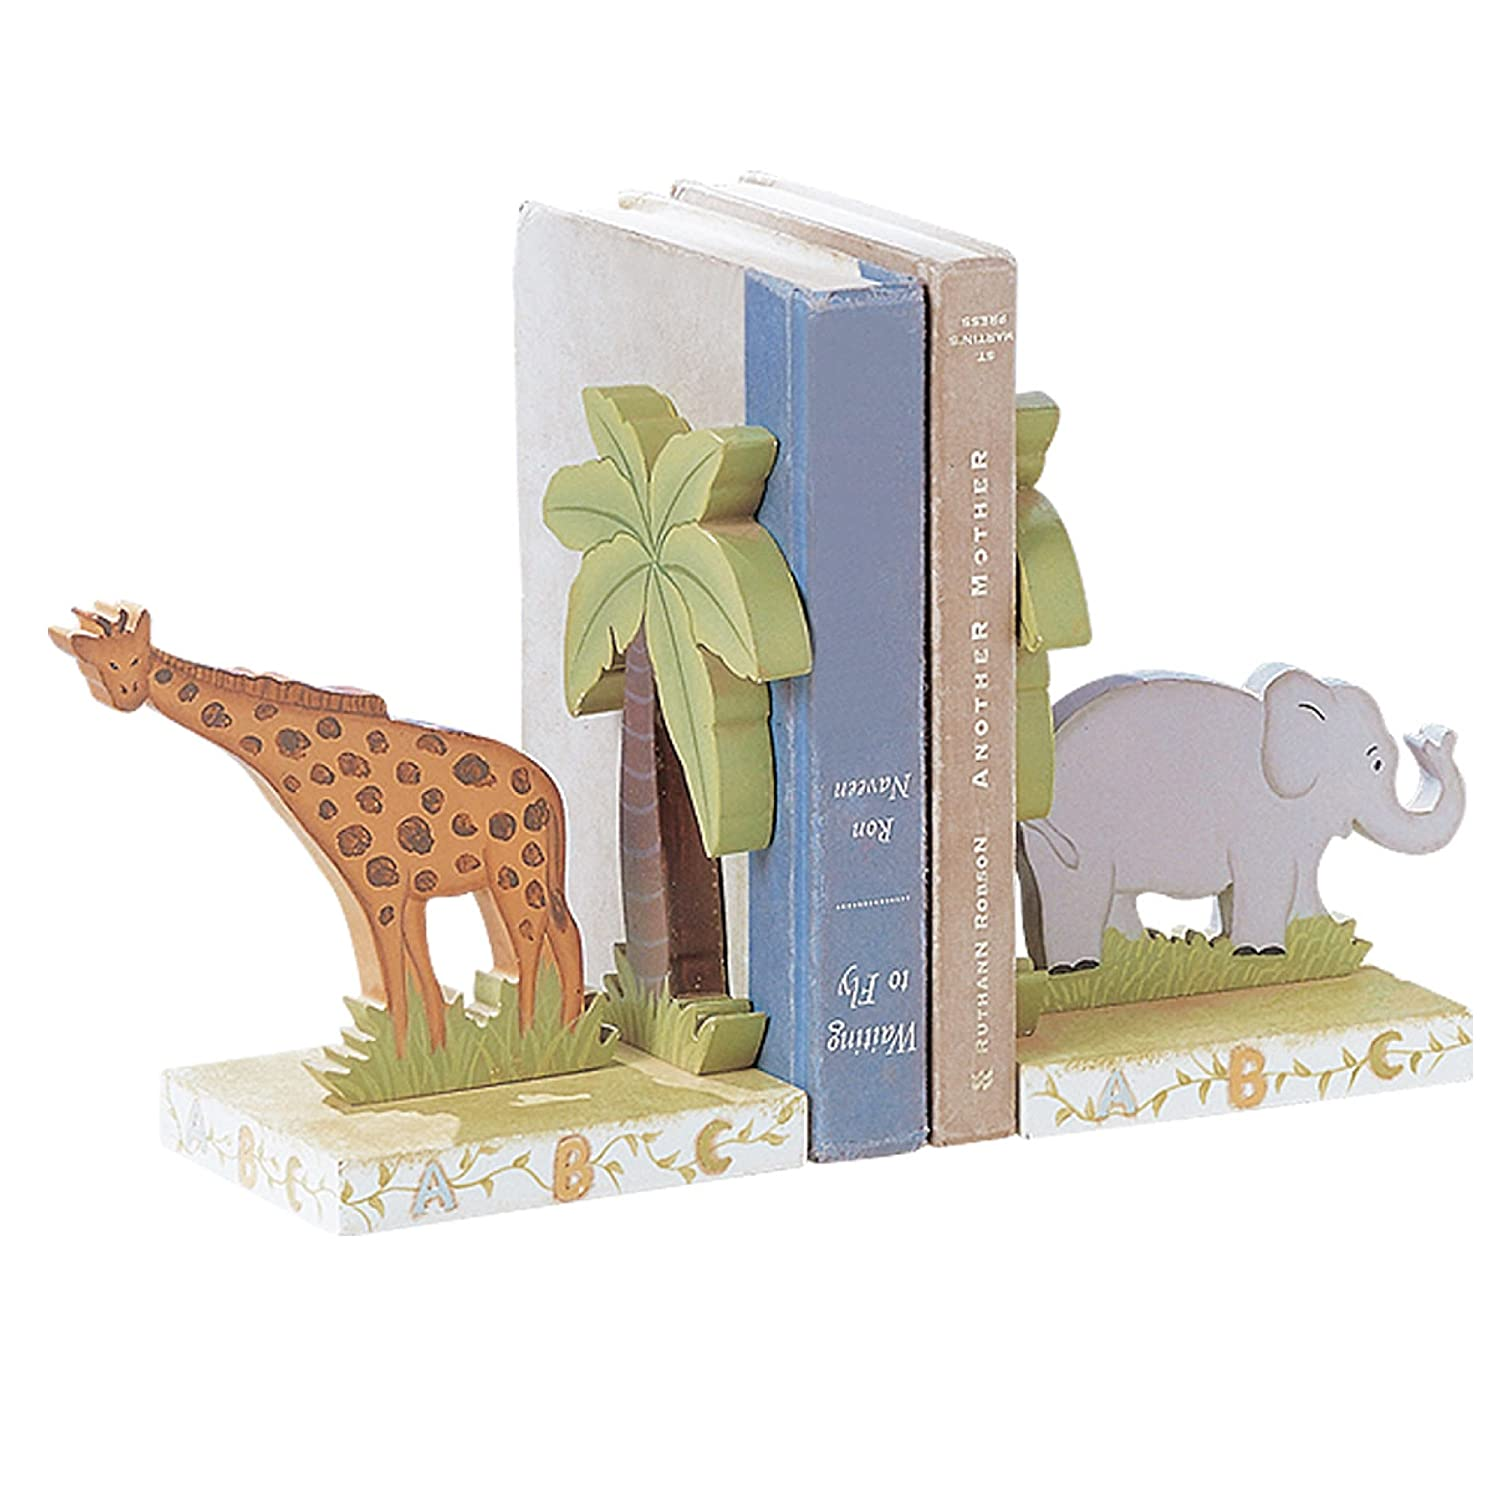 Fantasy Fields - Alphabet Thematic Set of 2 Wooden Bookends for Kids | Imagination Inspiring Hand Crafted & Hand Painted Details Non-Toxic, Lead Free Water-based Paint Teamson Design Corp. W-4834A